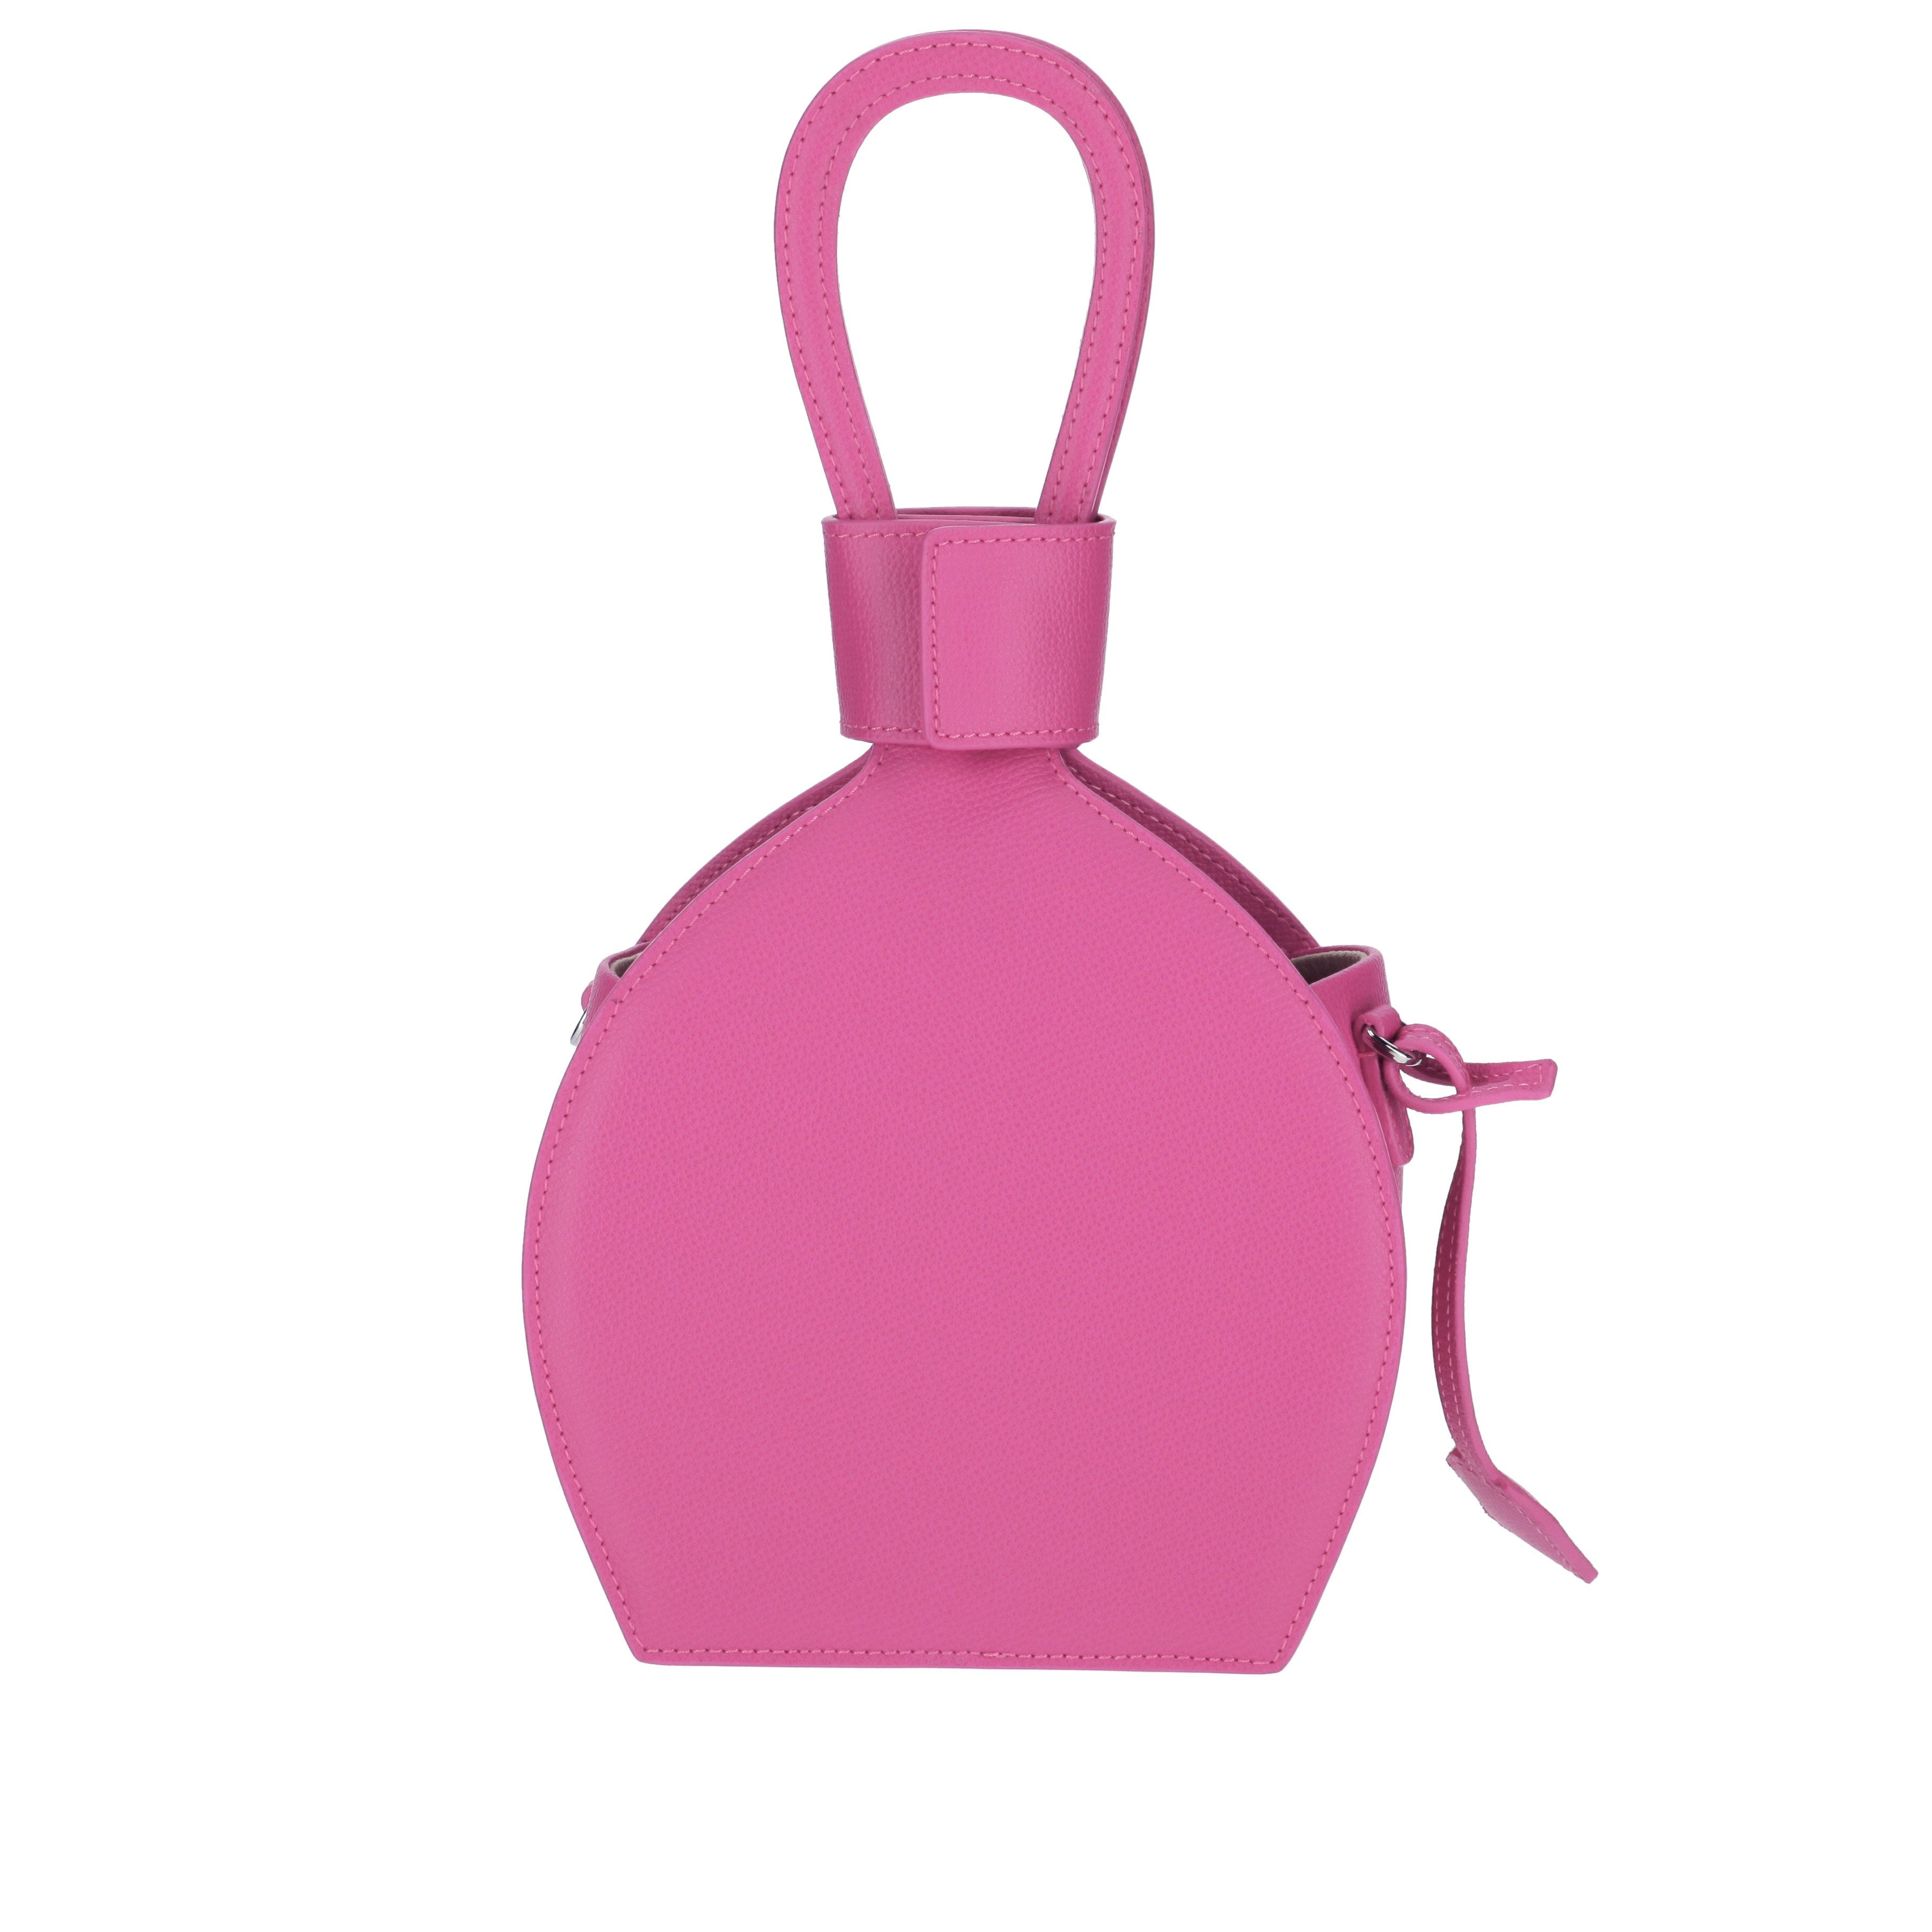 A party bag with ethical leather, ATENA PASSION PURSE-SLING BAG, a hot pink bag, hot pink purse, with minimalist look from MDLR